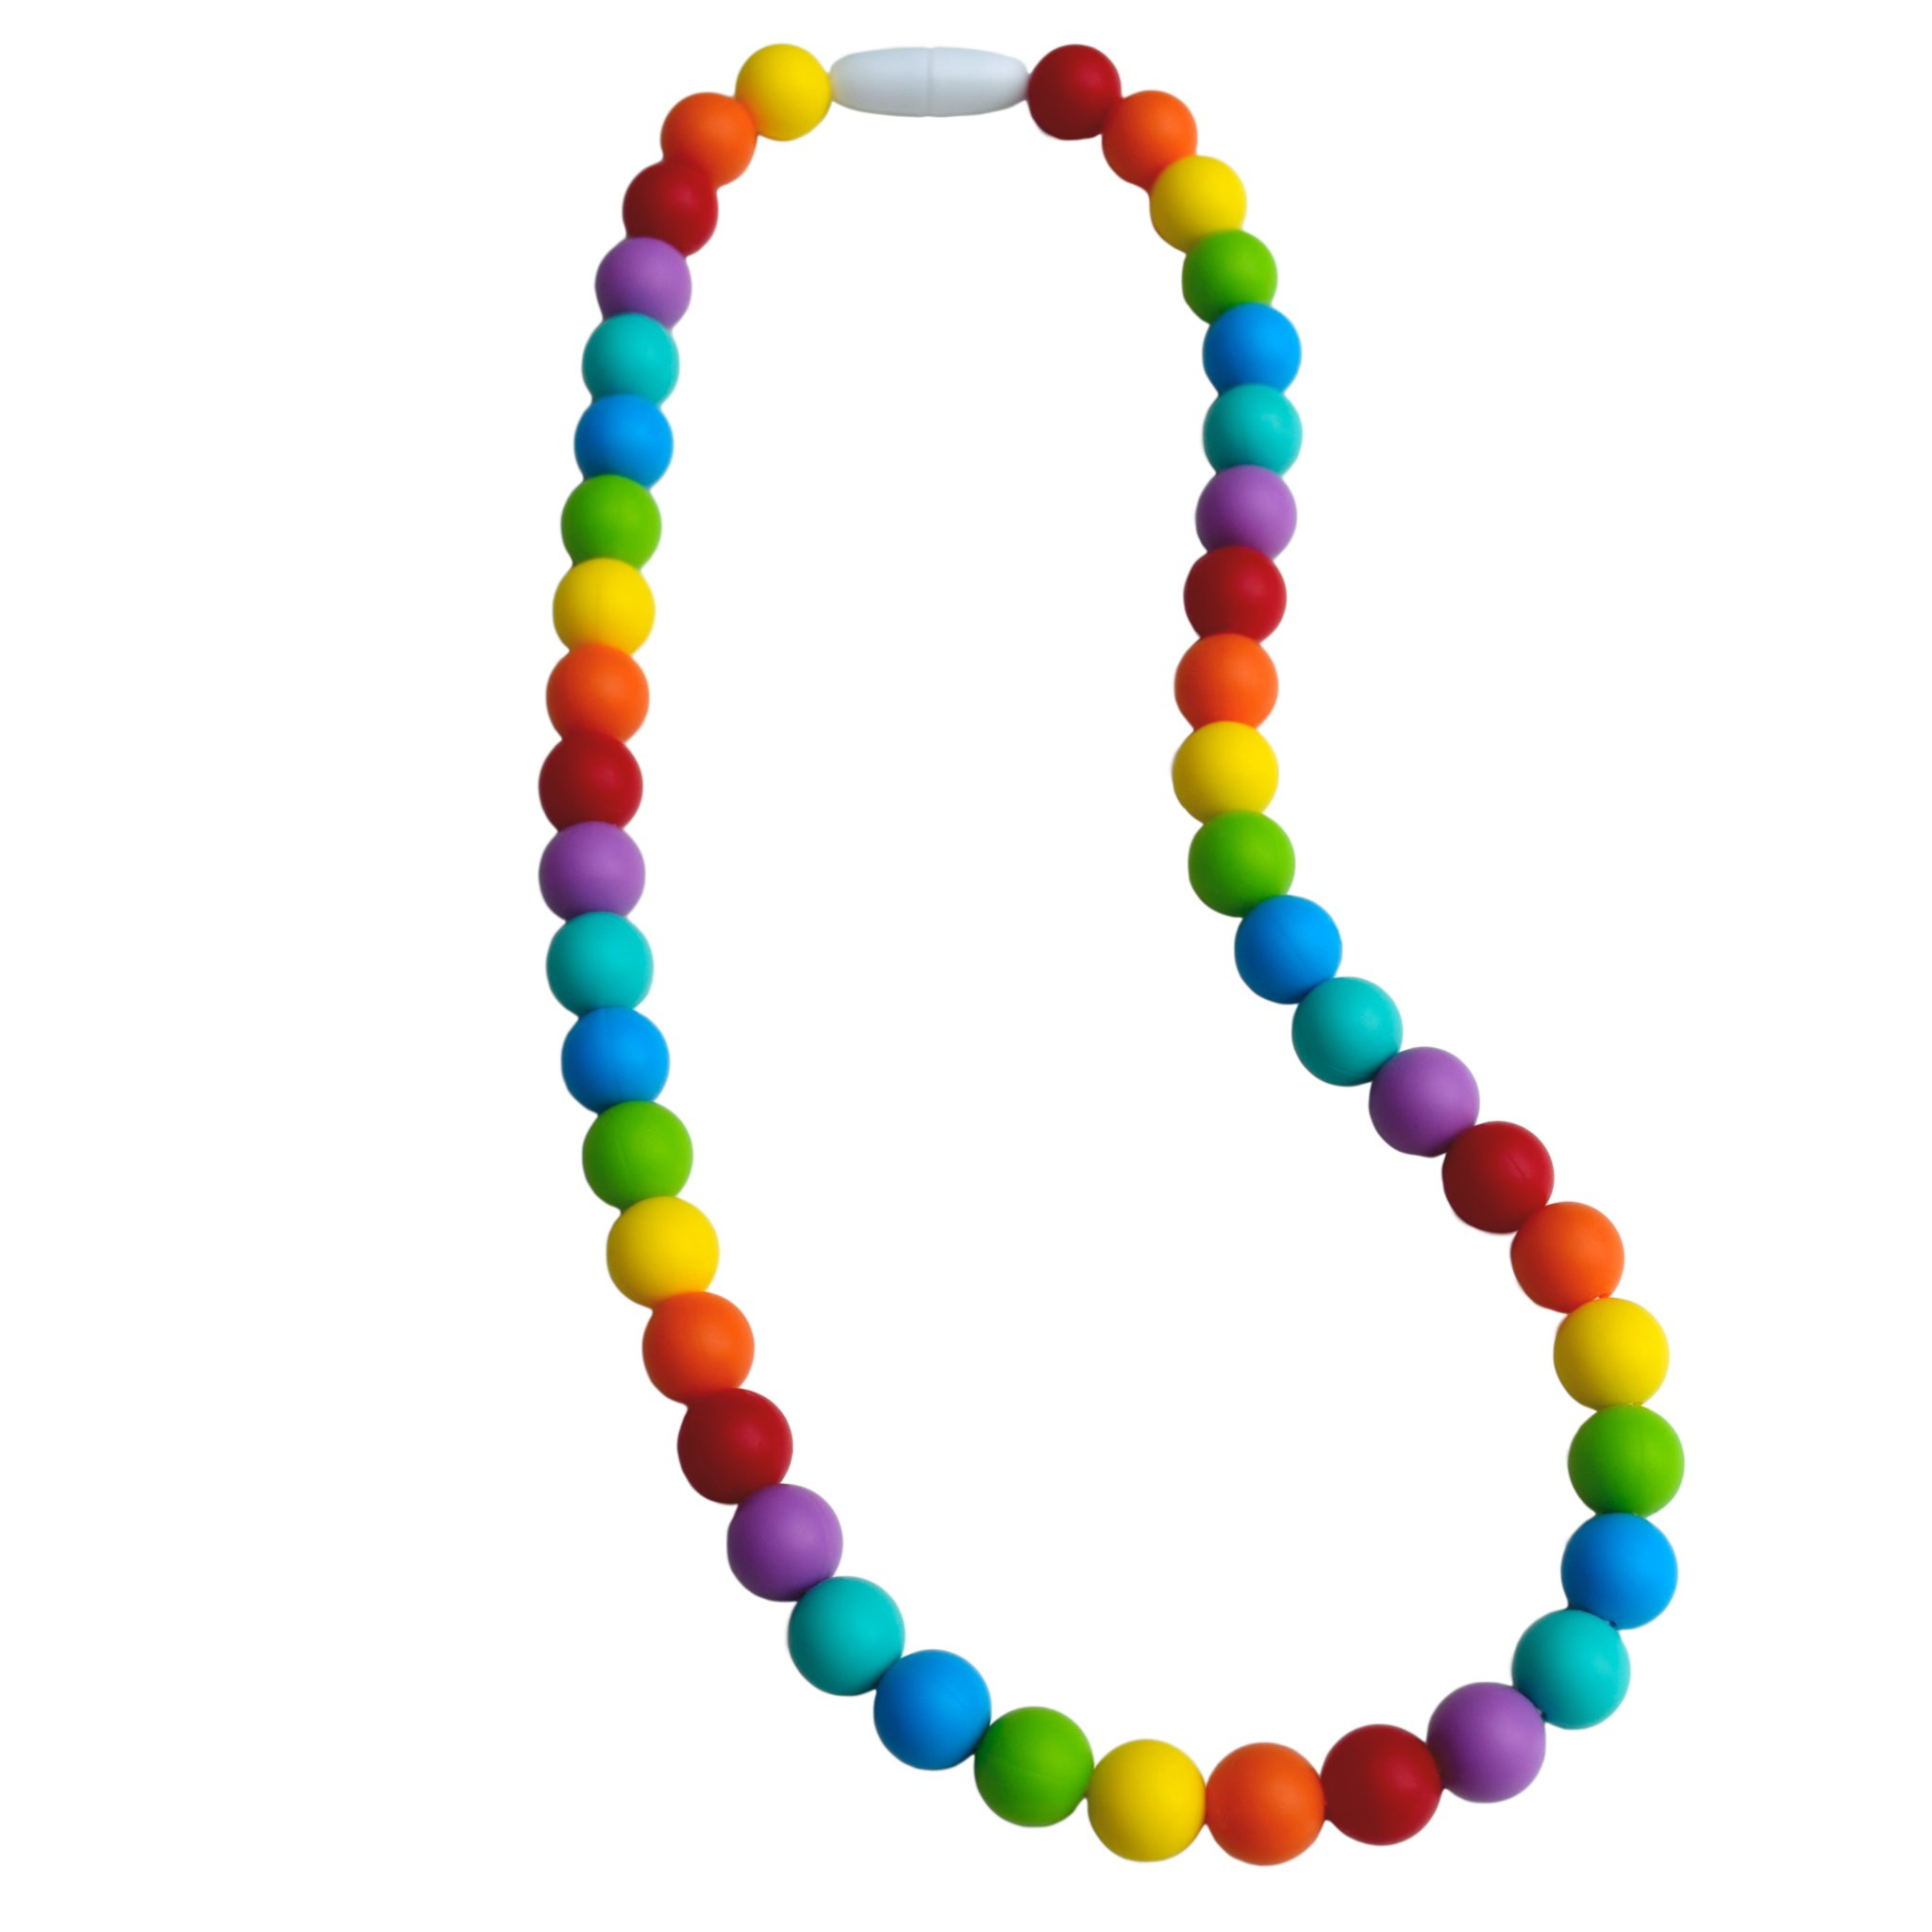 Sensory Oral Motor Aide Chewelry Necklace - Chewy Jewelry for Sensory-Focused Kids with Autism or Special Needs - Calms Kids and Reduces Biting/Chewing - Rainbow Necklace (No Knots)